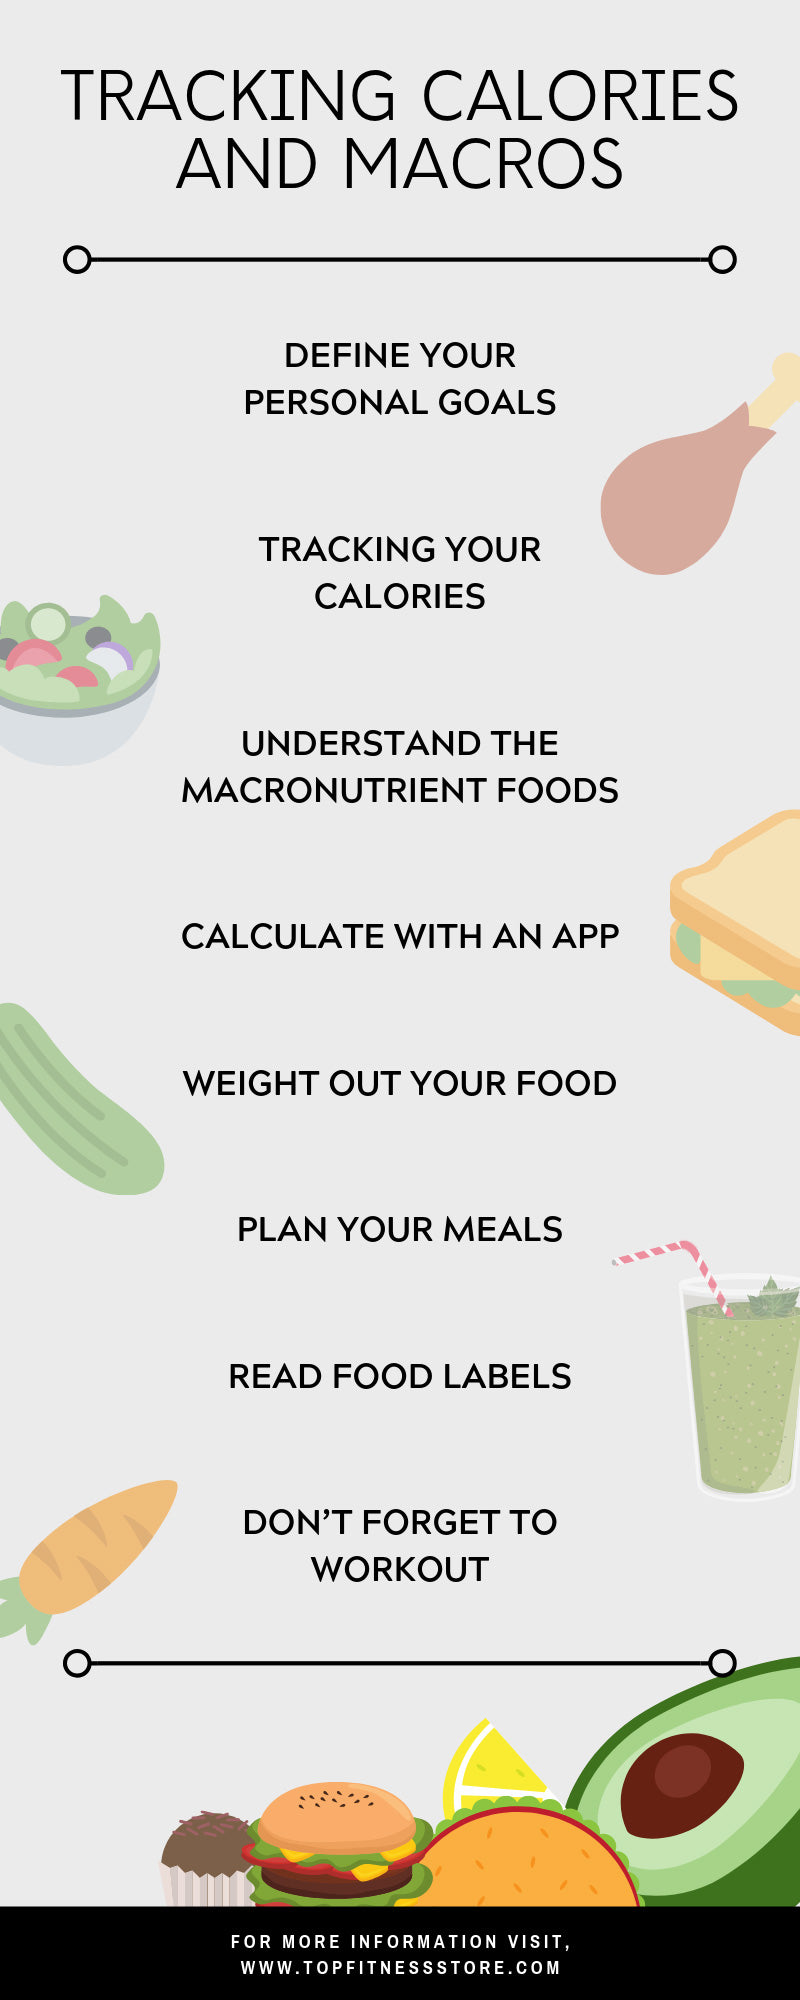 Tracking Calories and Macros infographic